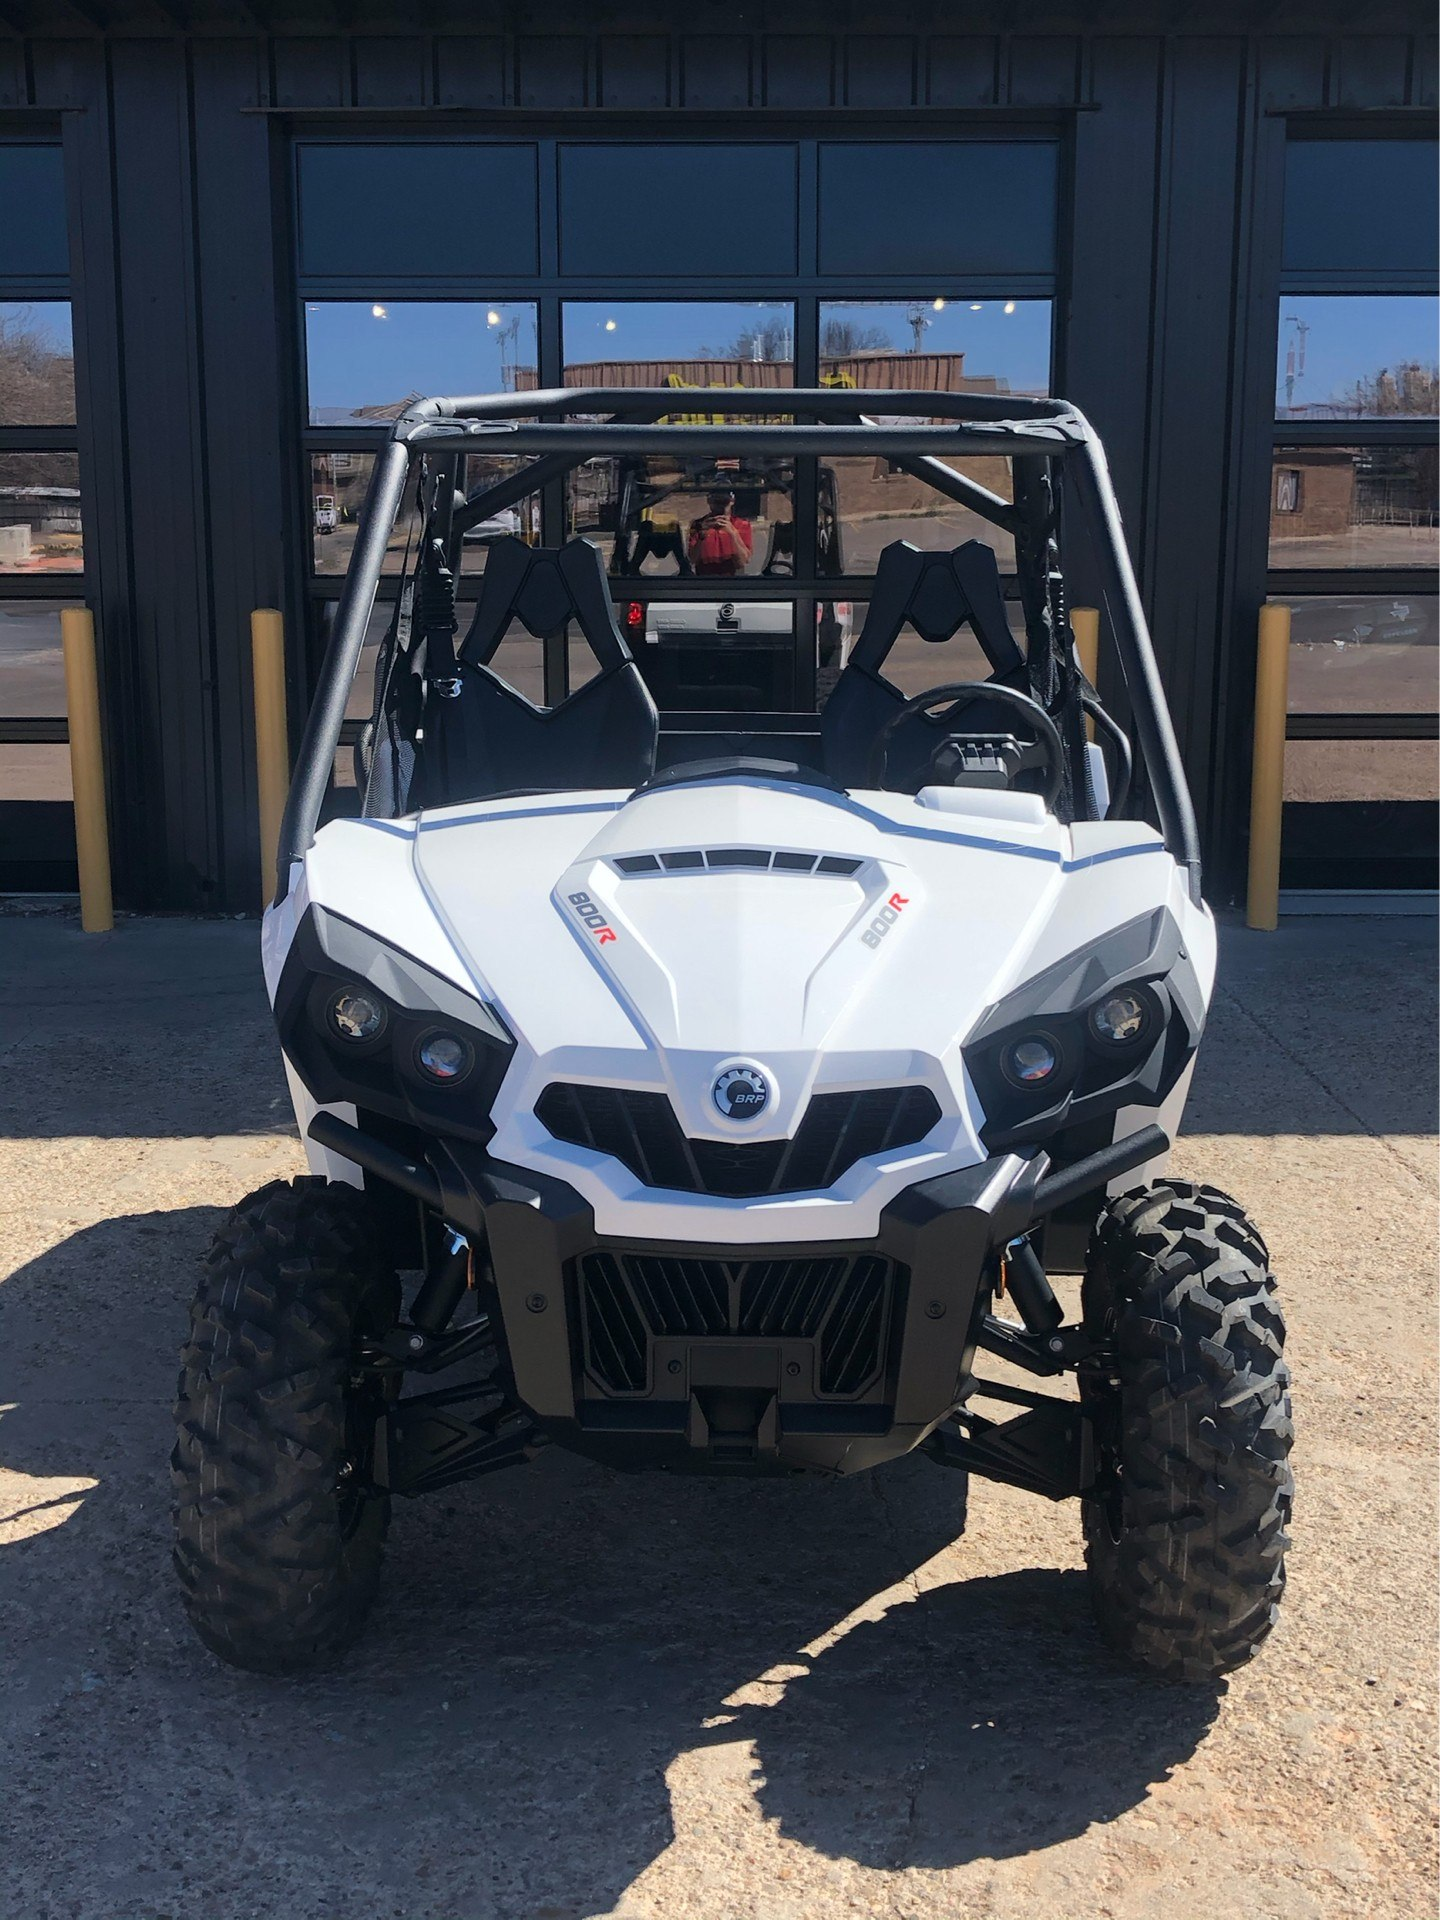 2020 Can-Am Commander 800R in Amarillo, Texas - Photo 2